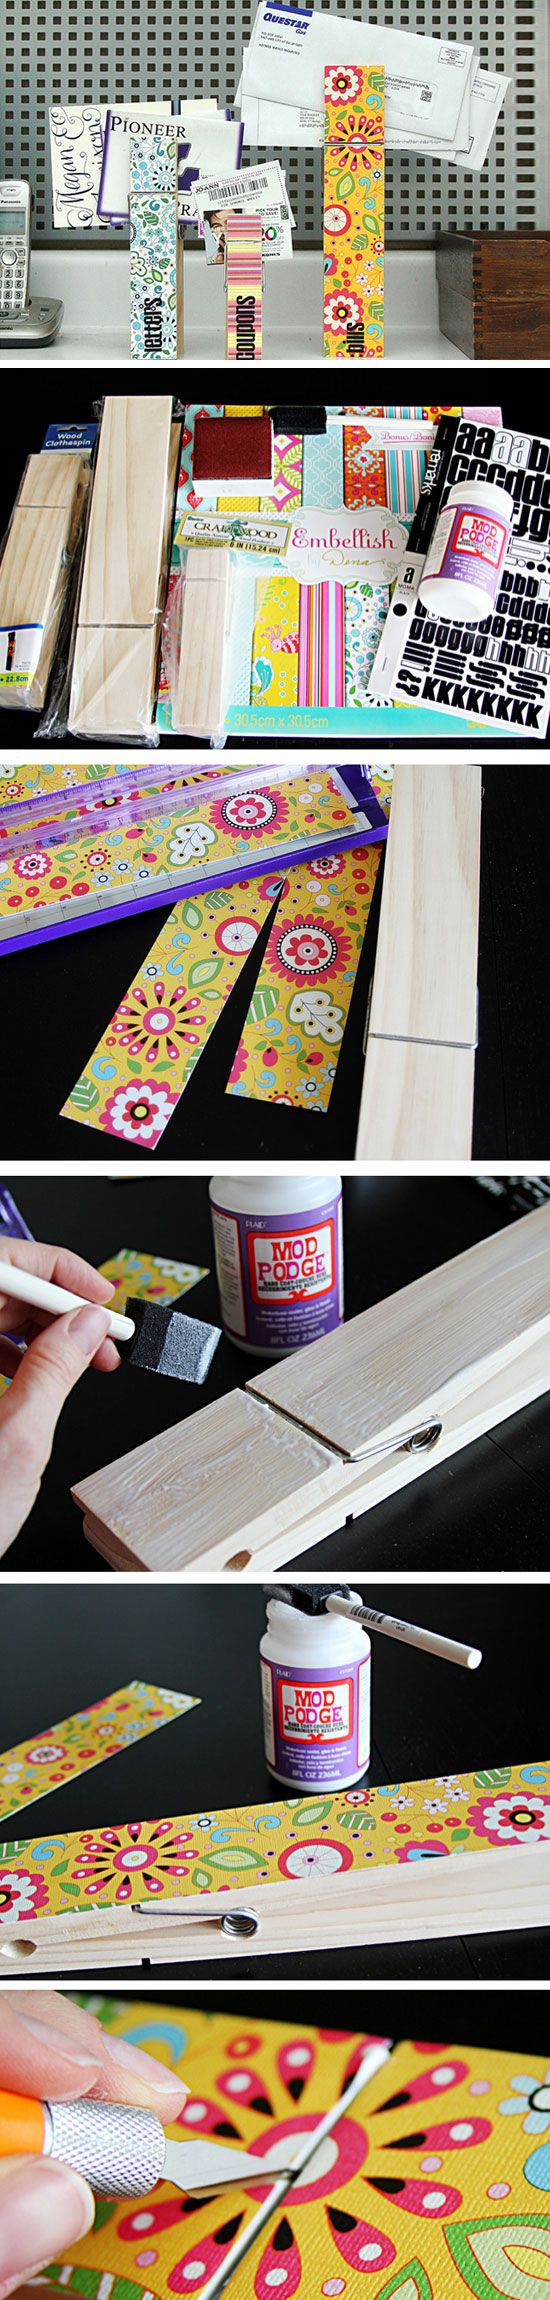 Jumbo Clothespin Mail Sorter | Click Pick for 24 DIY Organization Ideas for The Home | DIY Storage Ideas for Small Spaces